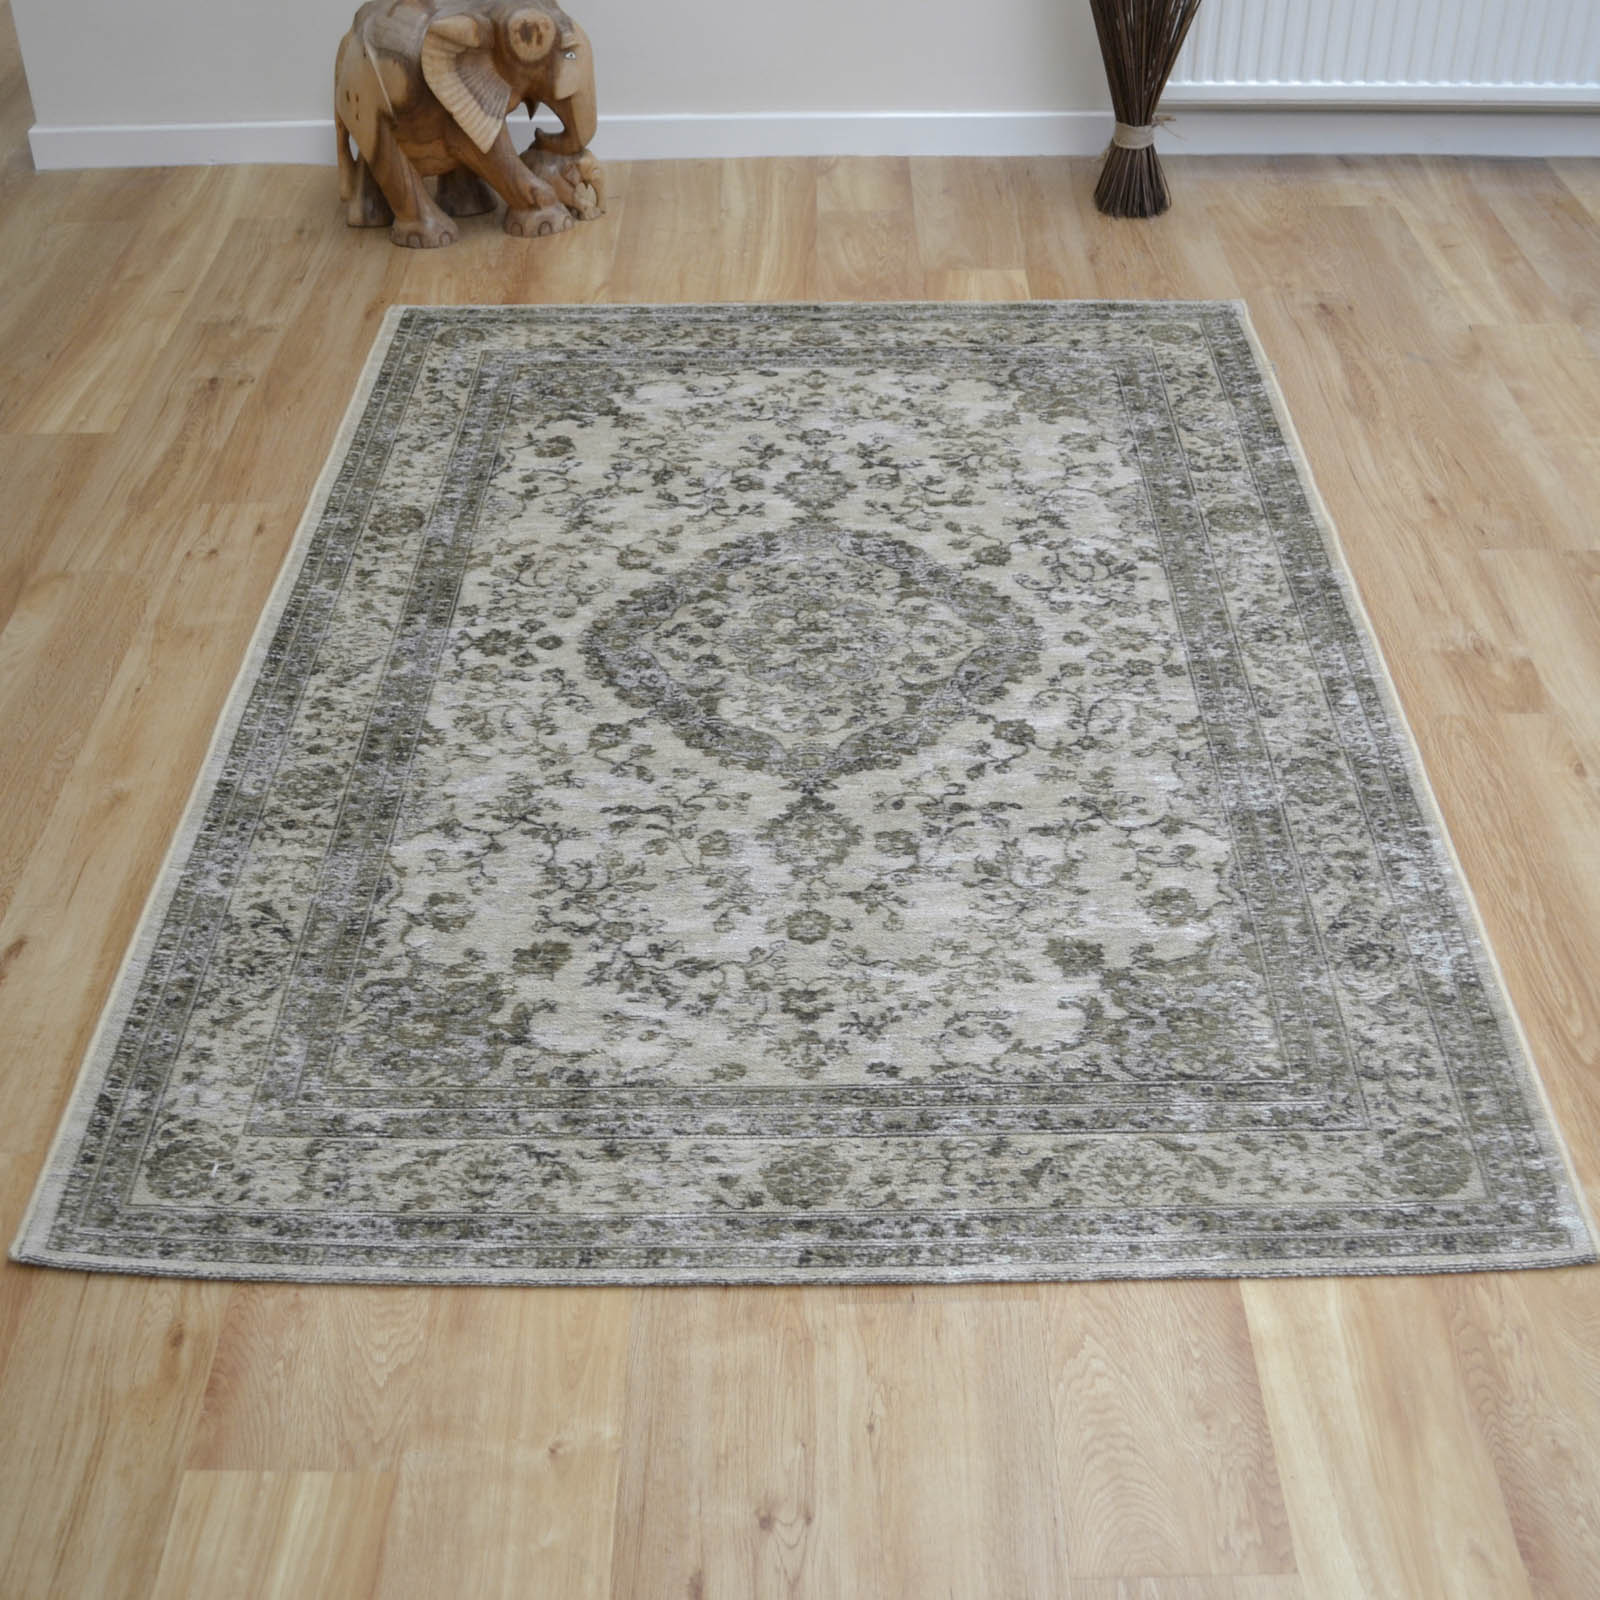 Capri Rugs 91269 2001 in Beige